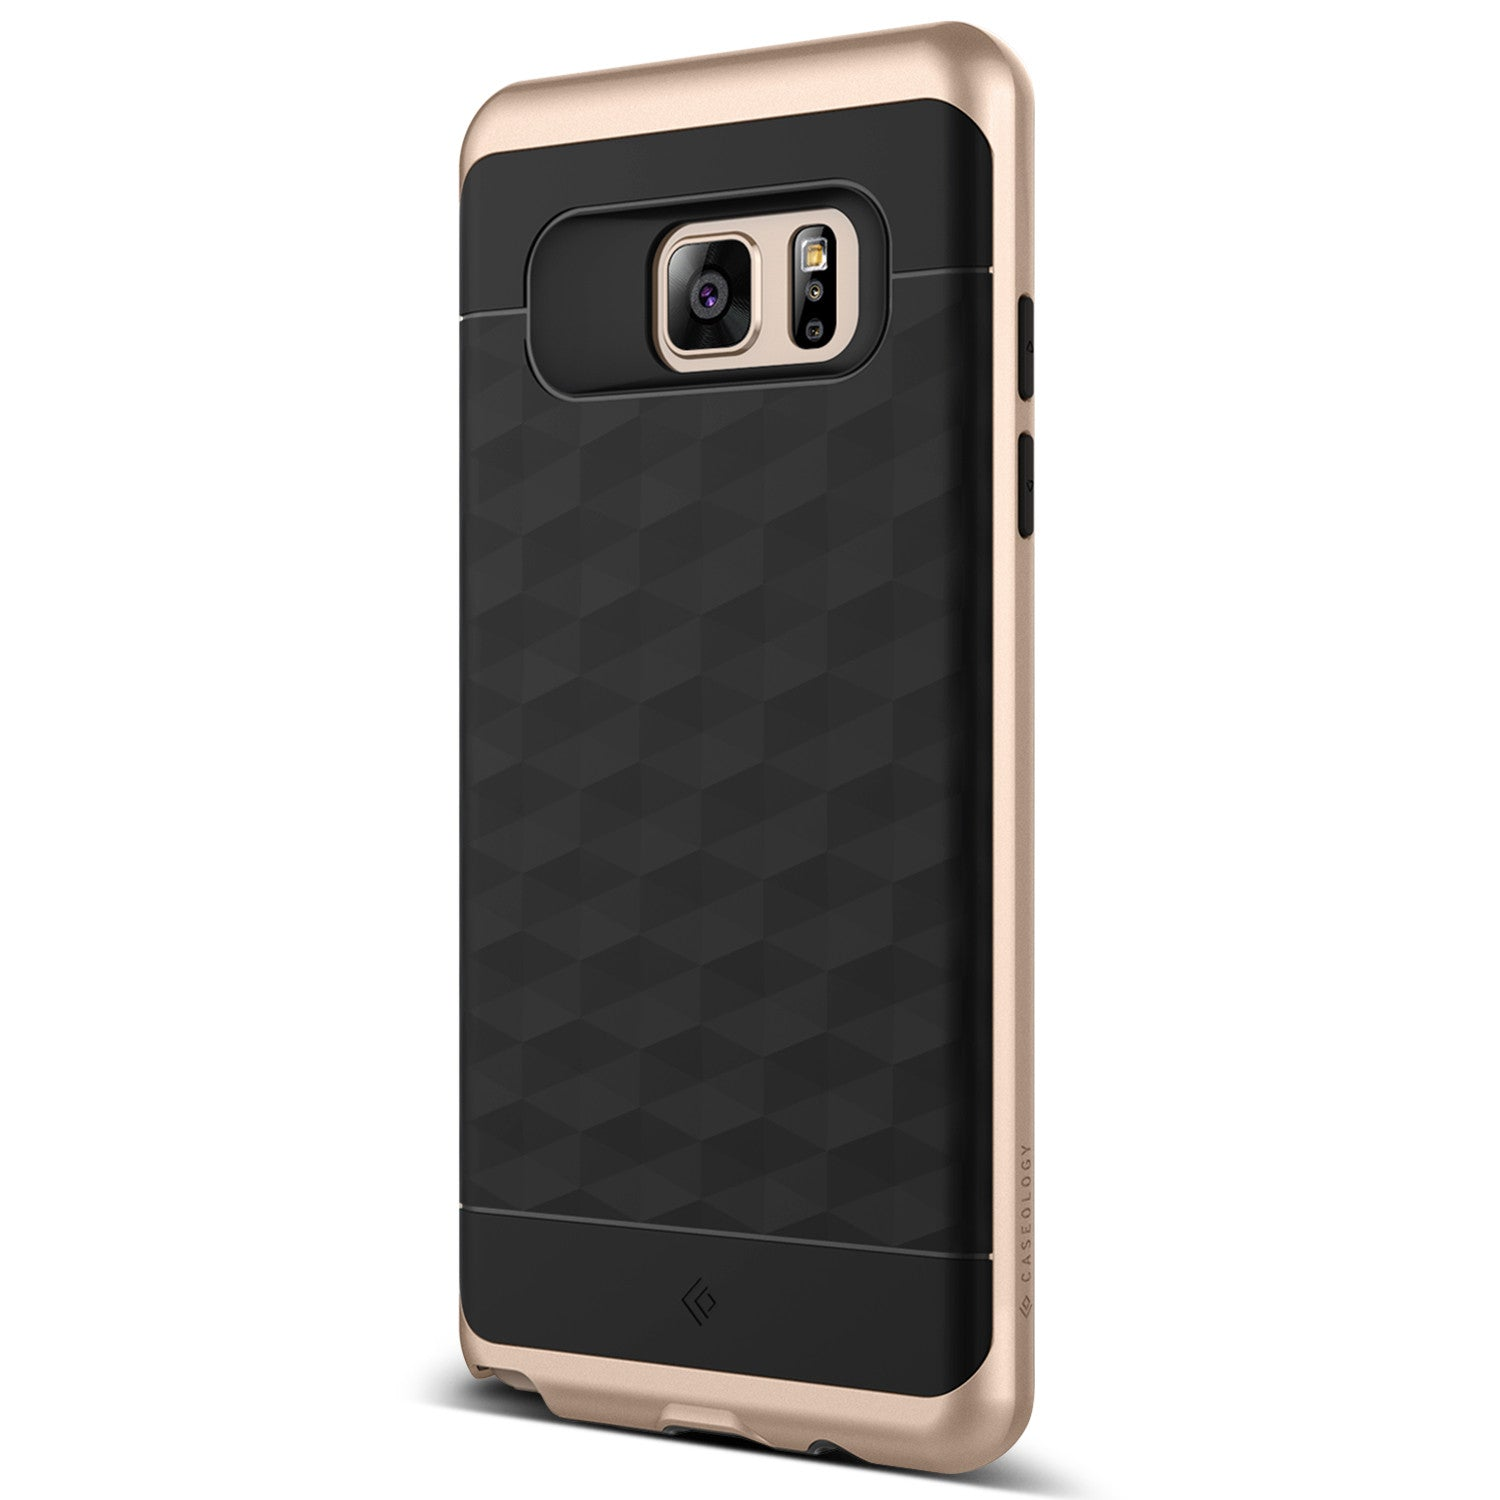 Galaxy Note 7 Case Parallax